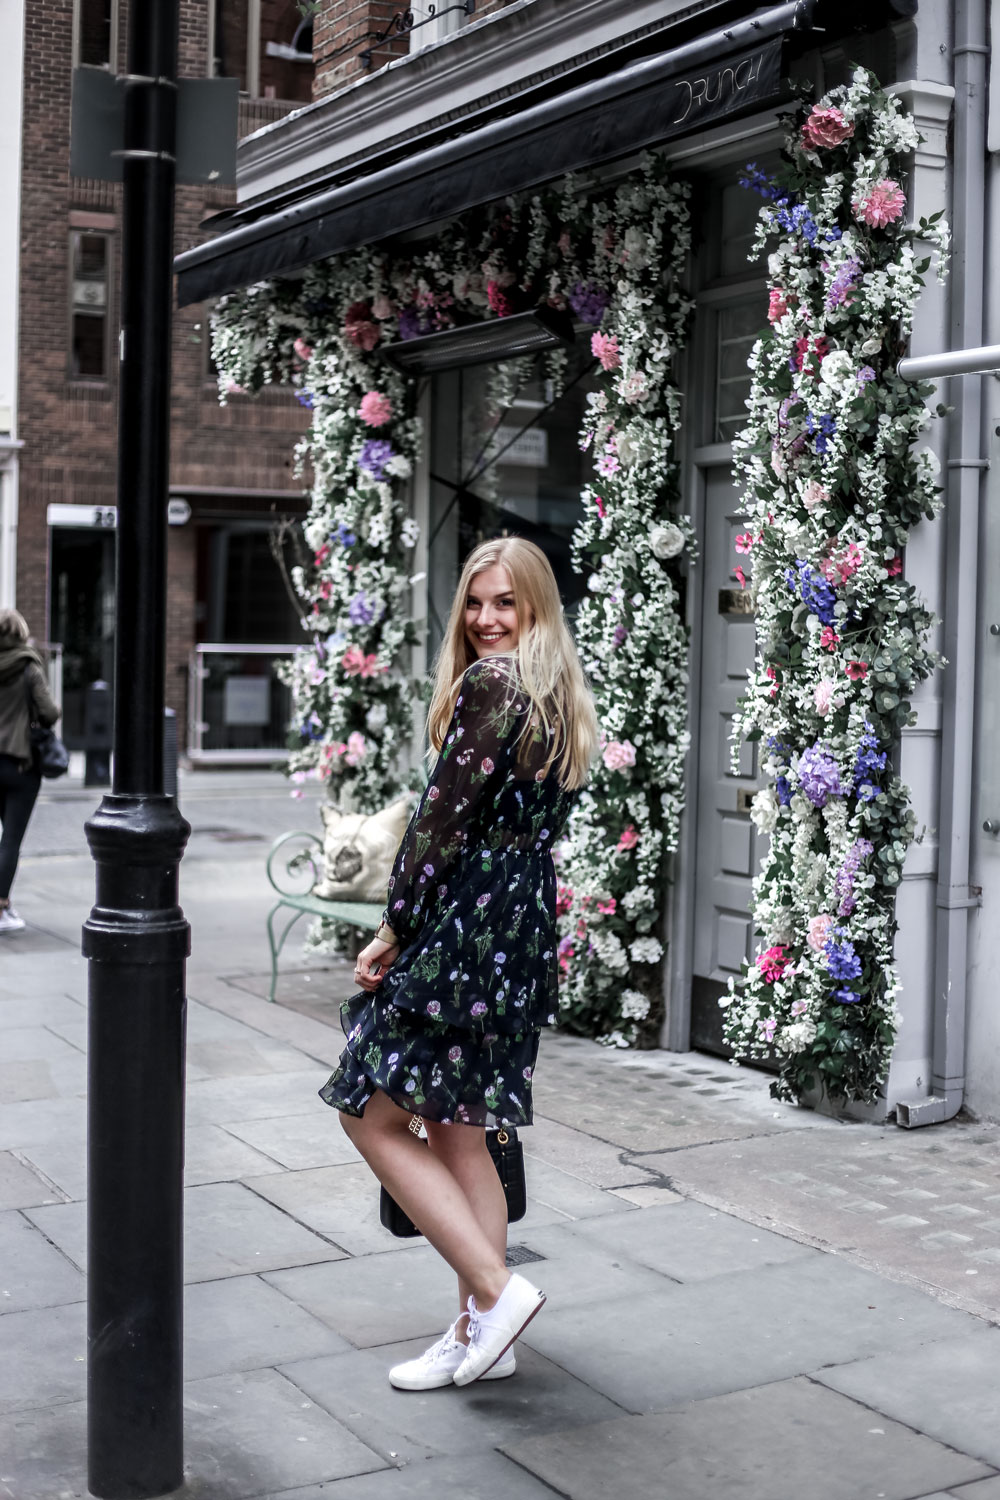 Eva Jasmin Flower Dress Streetstyle London Fashion Blogger Erlangen Nuremberg Gucci Marmont Klischee Job